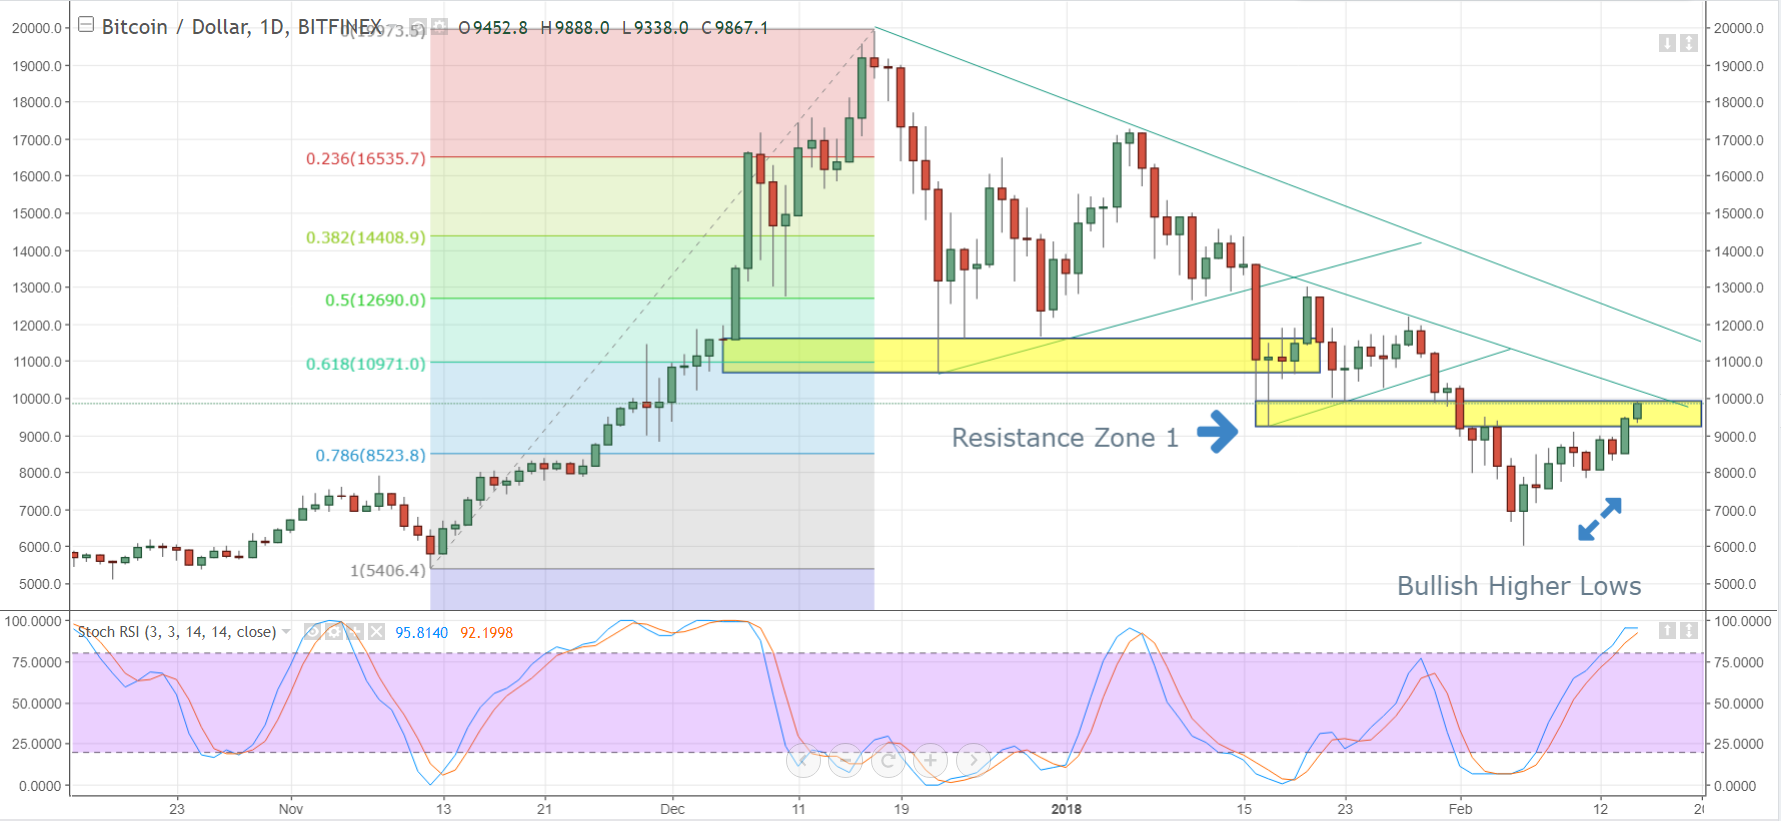 Bitcoin Rate Chart: Bullish Momentum Signals Higher Prices